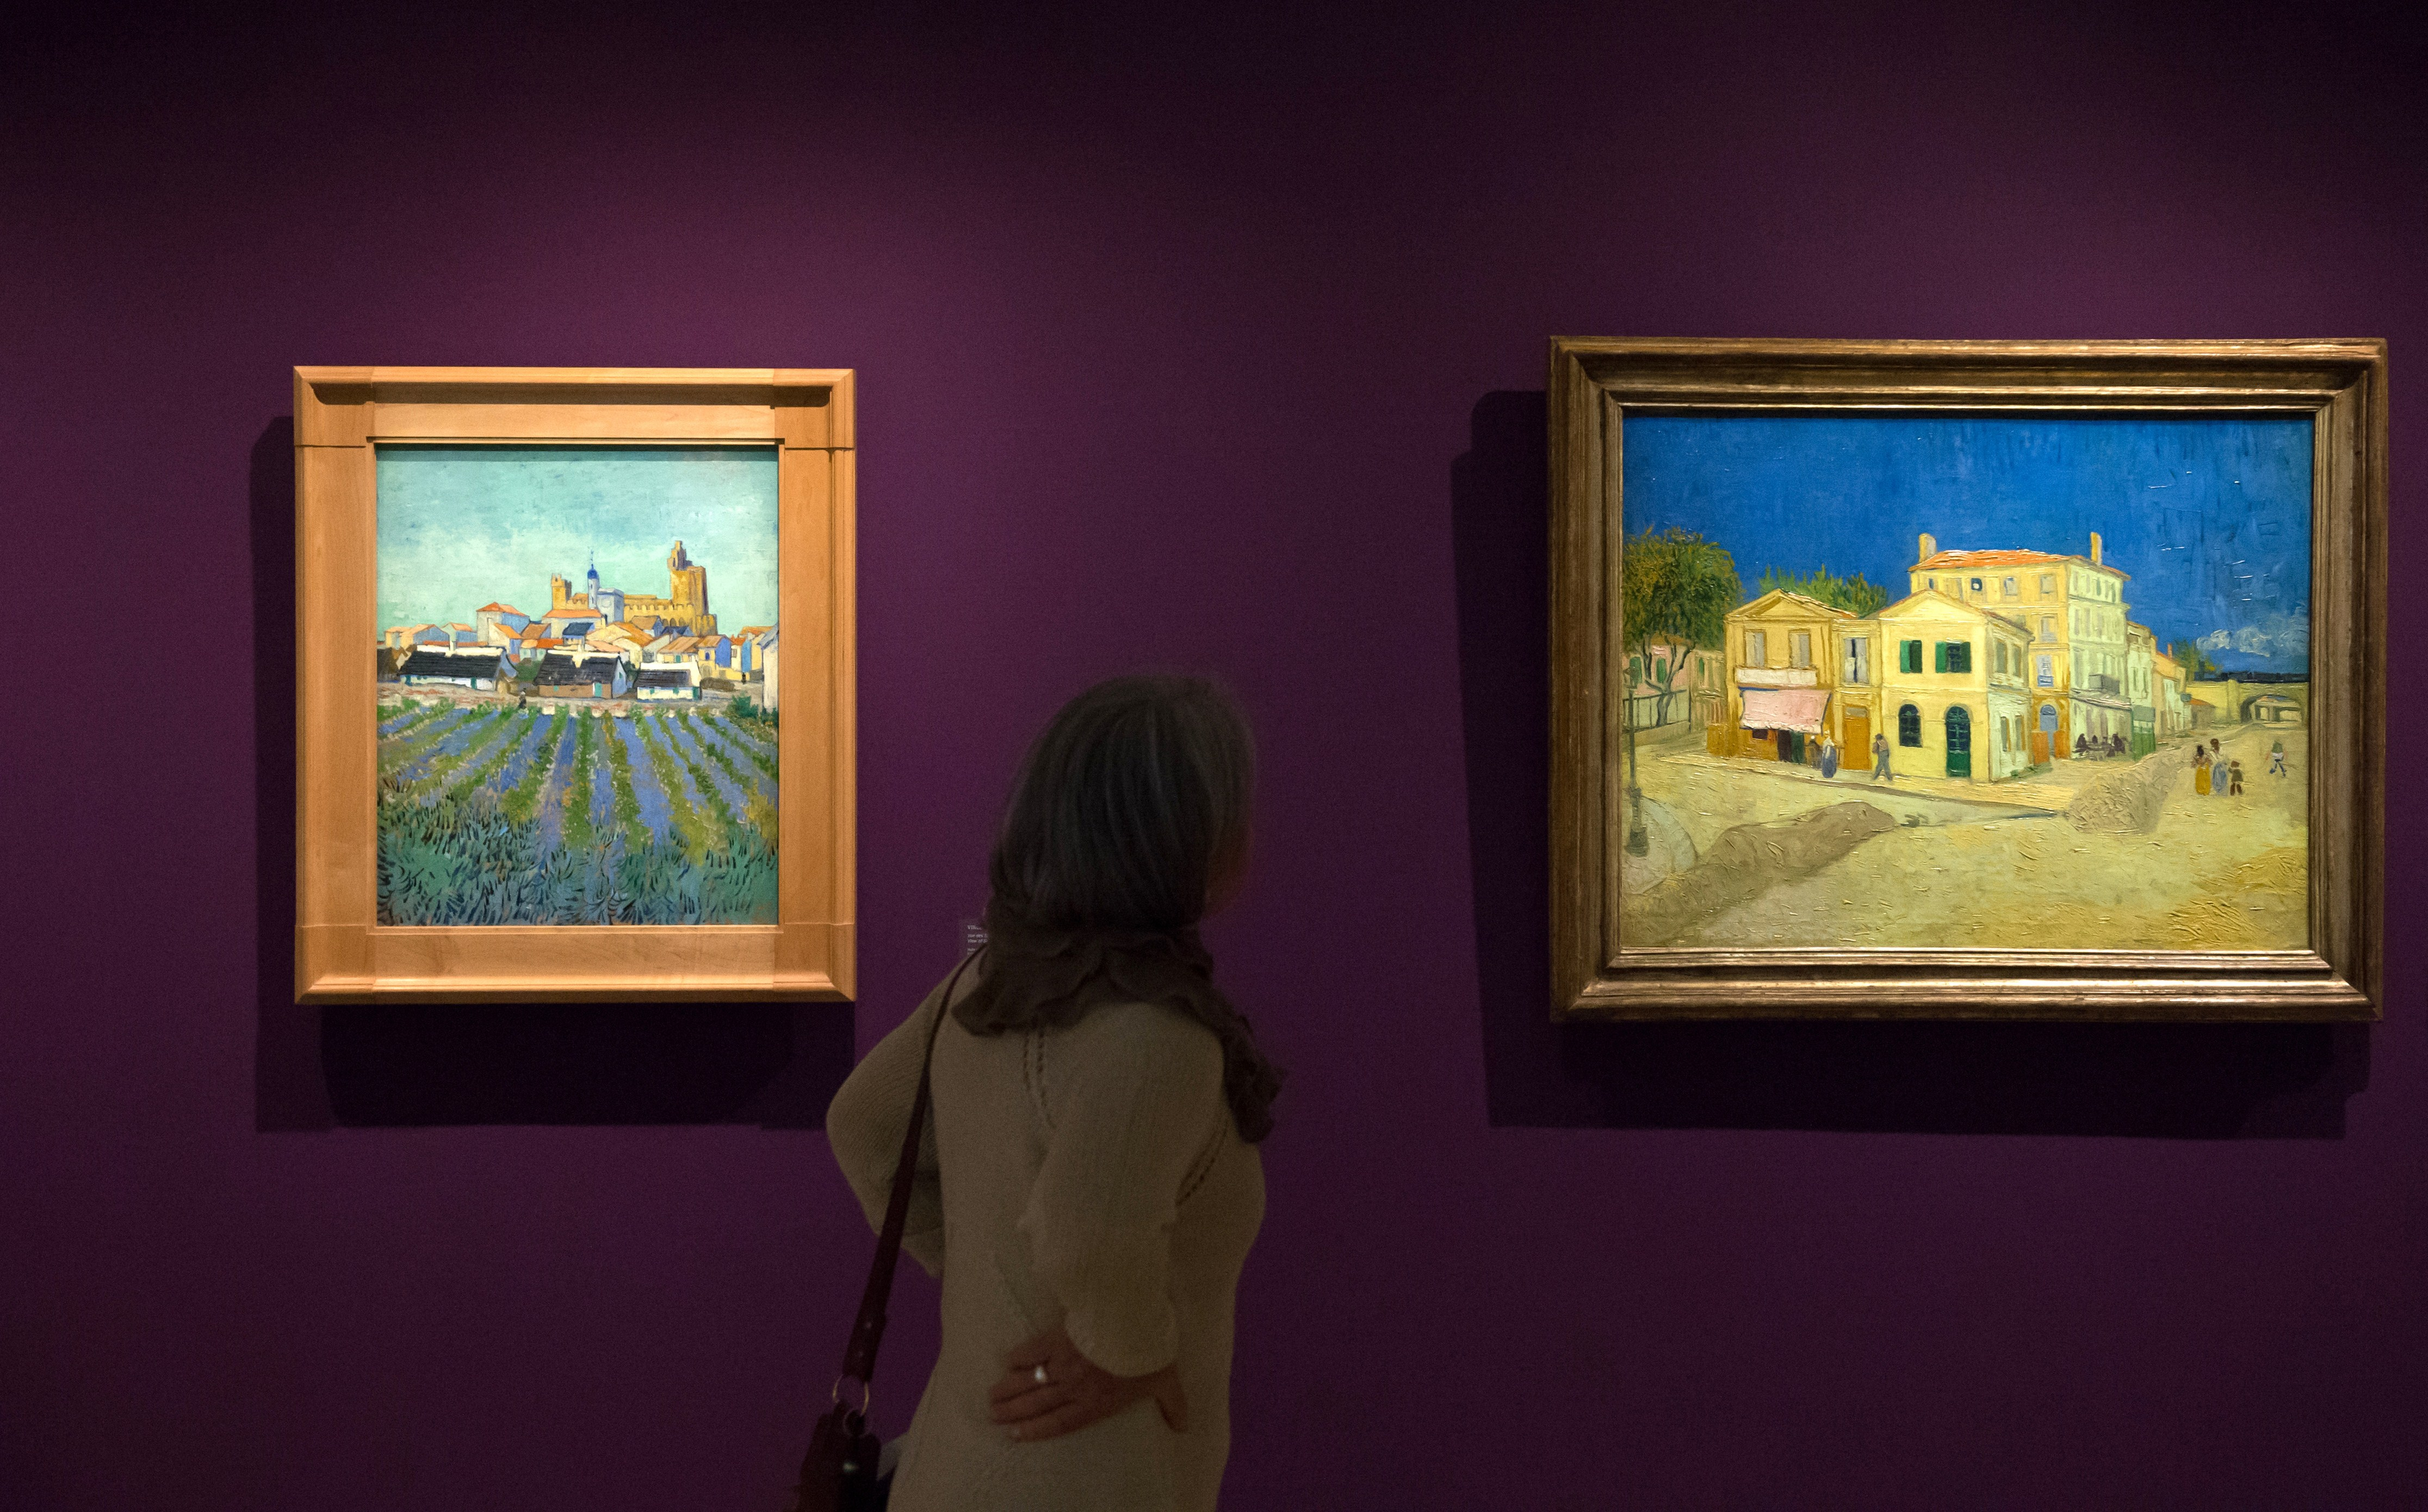 A woman looks at paintings entitled 'View of the Saintes-Maries-de-la-Mer' (1888) and 'La maison jaune' (The yellow house- 1888) by Dutch painter Vincent Willem van Gogh during the press preview of the exhibition 'Van Gogh live !' as part of the opening of the Fondation Vincent van Gogh Arles on April 3, 2014 in Arles, southern France. (BERTRAND LANGLOIS/AFP via Getty Images)